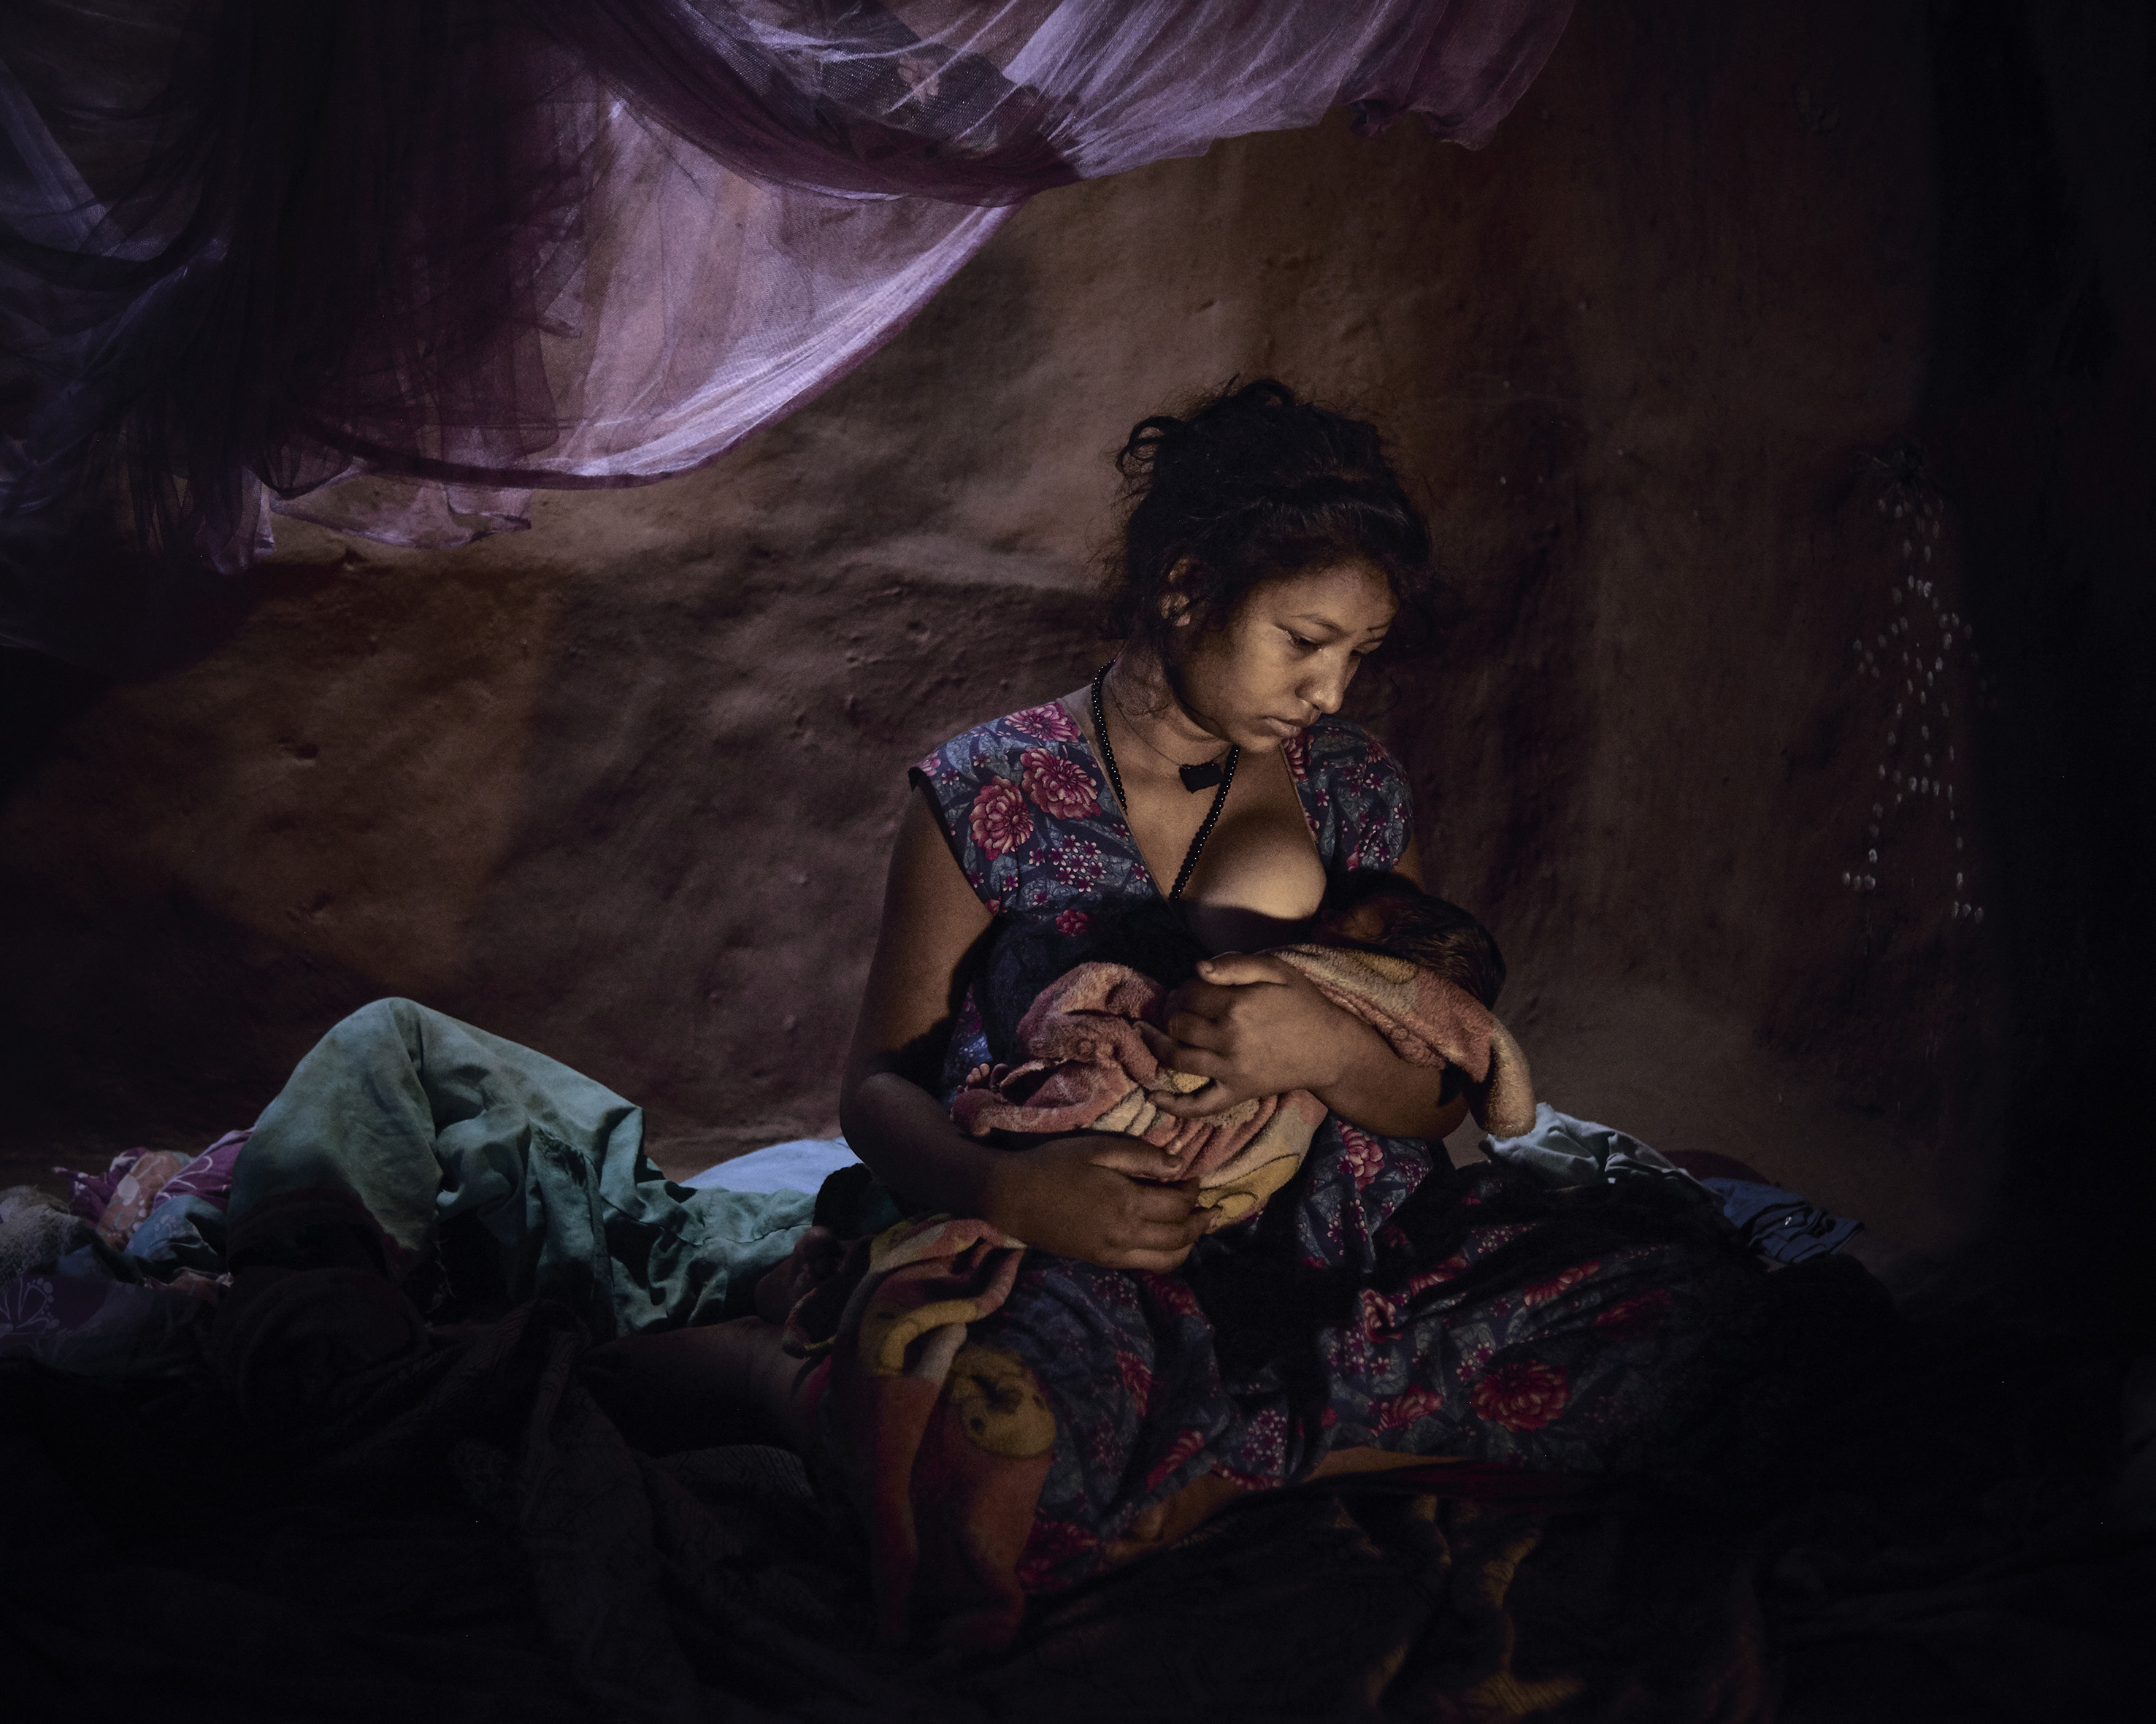 Saraswati, 16, must live in a closed dark room with her baby because she bled after childbirth.